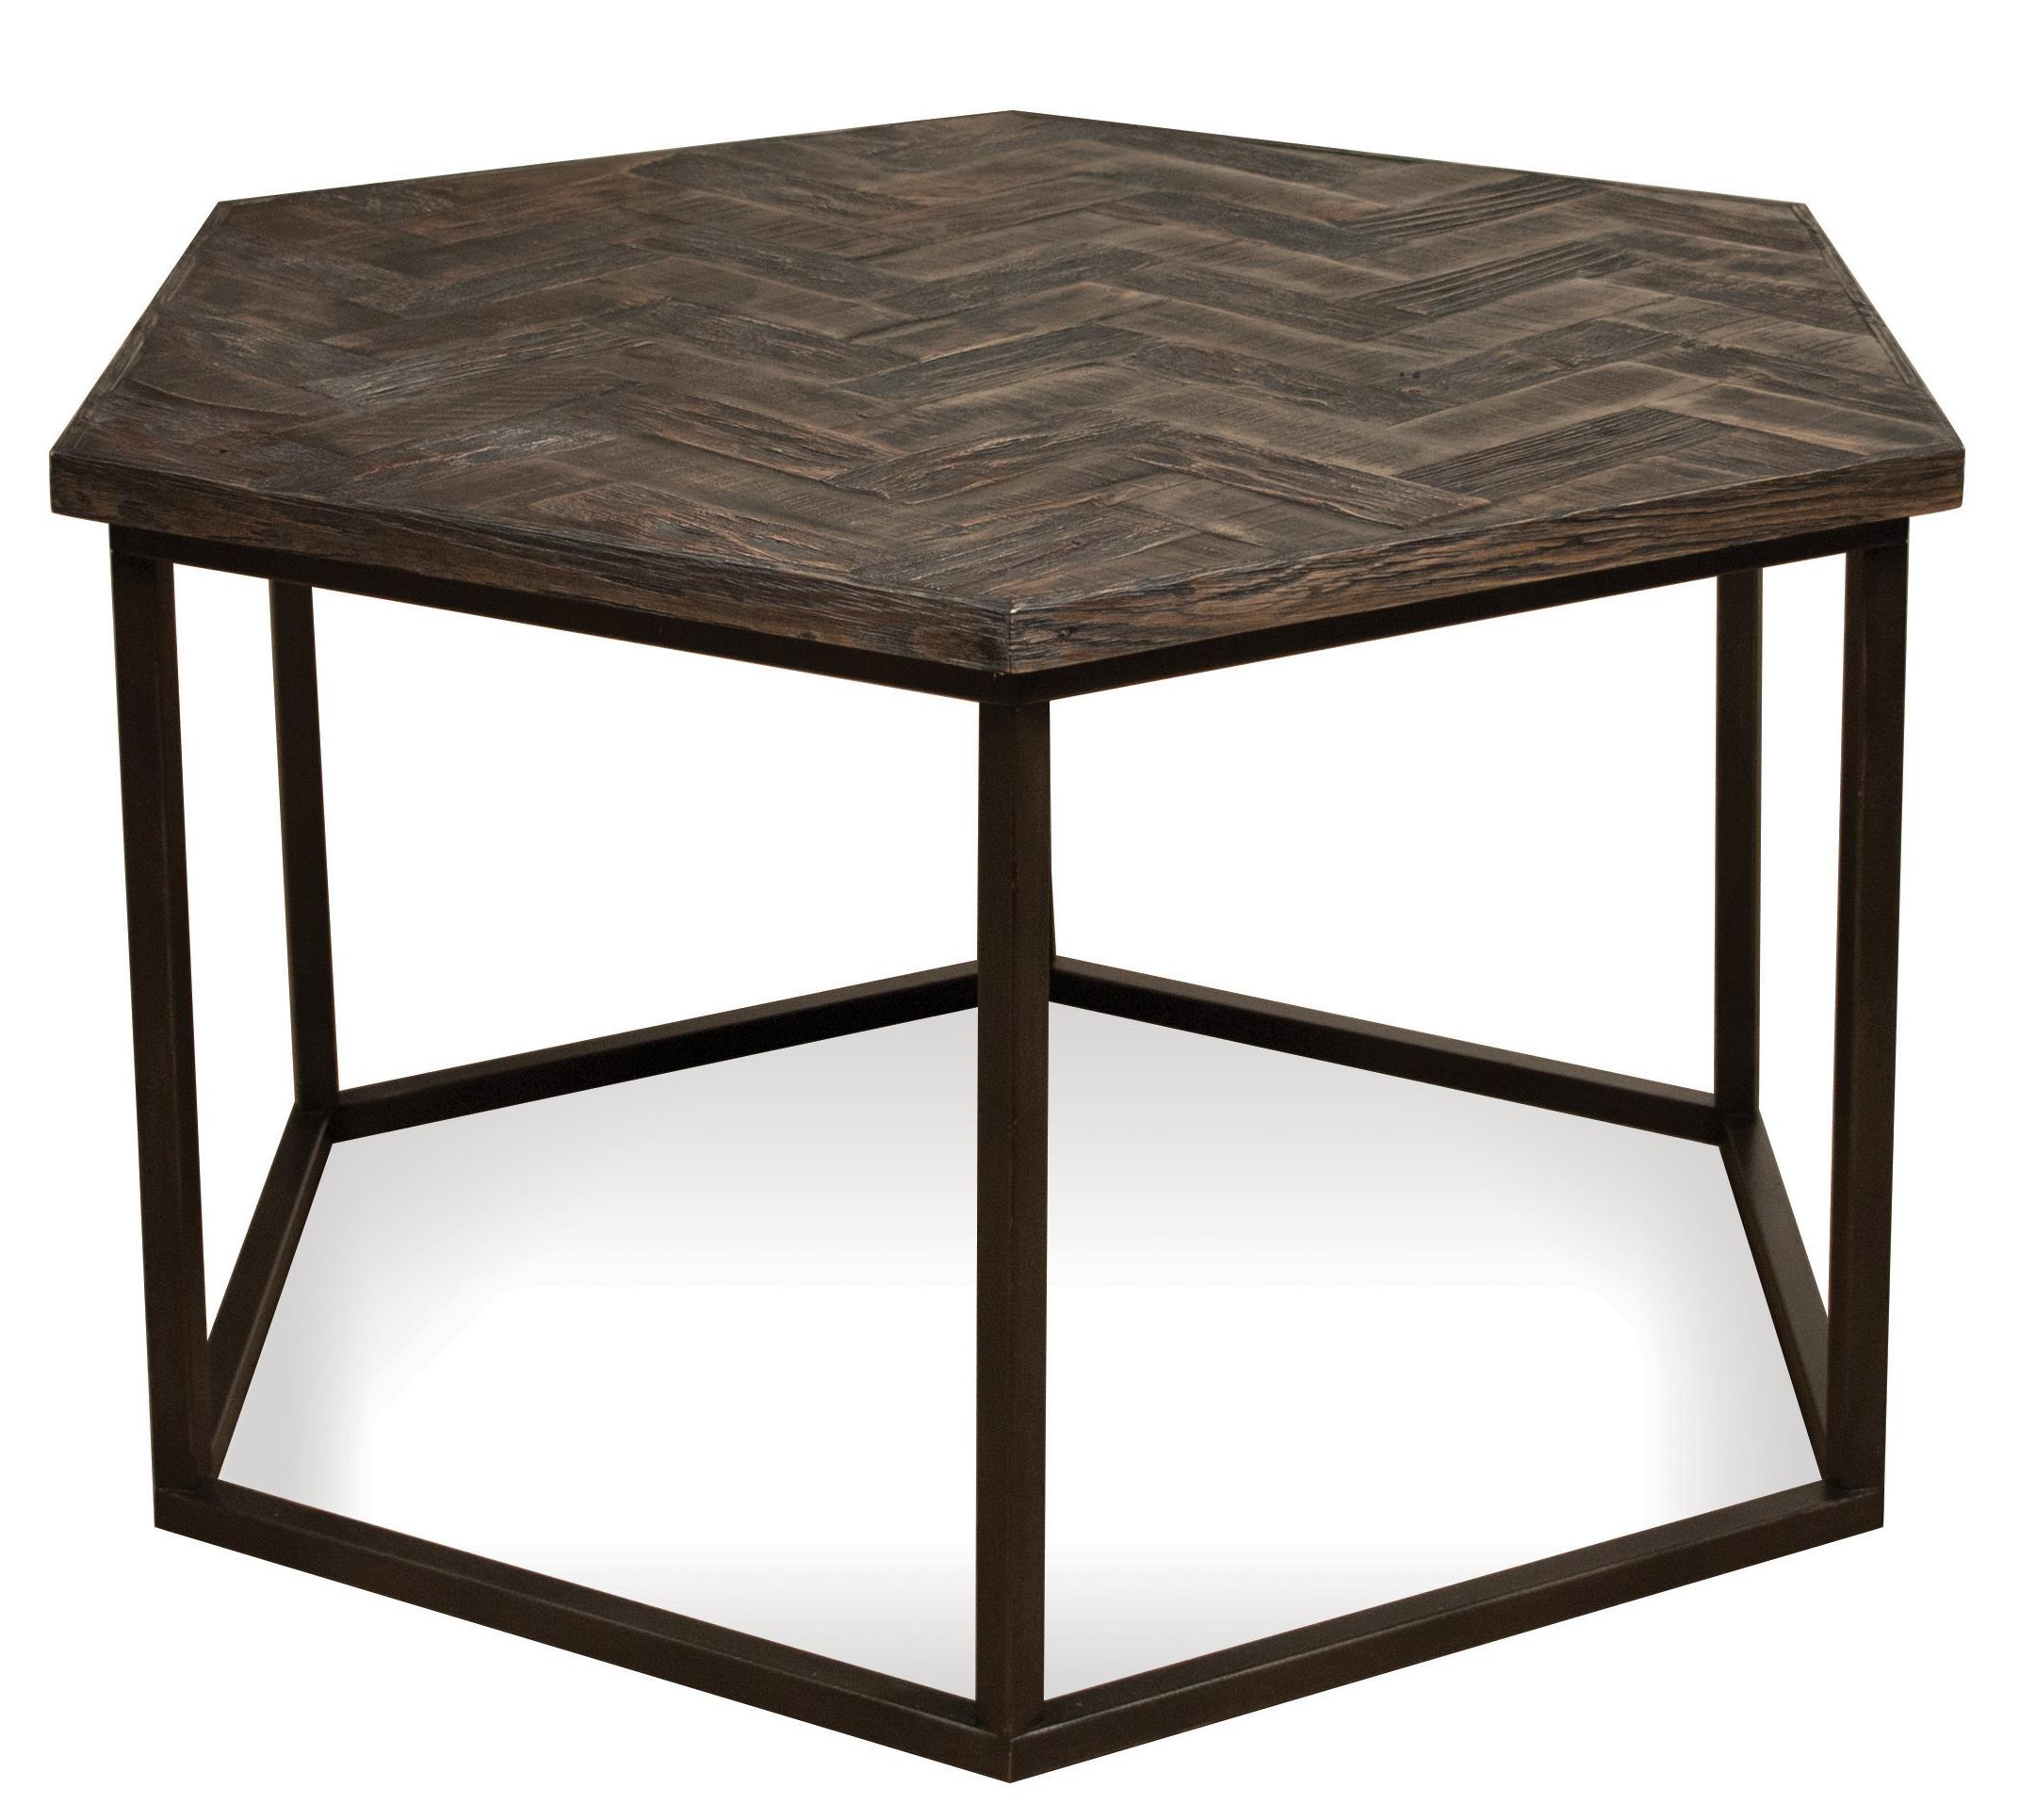 Hexagon Coffee Table w Metal Base by Riverside Furniture